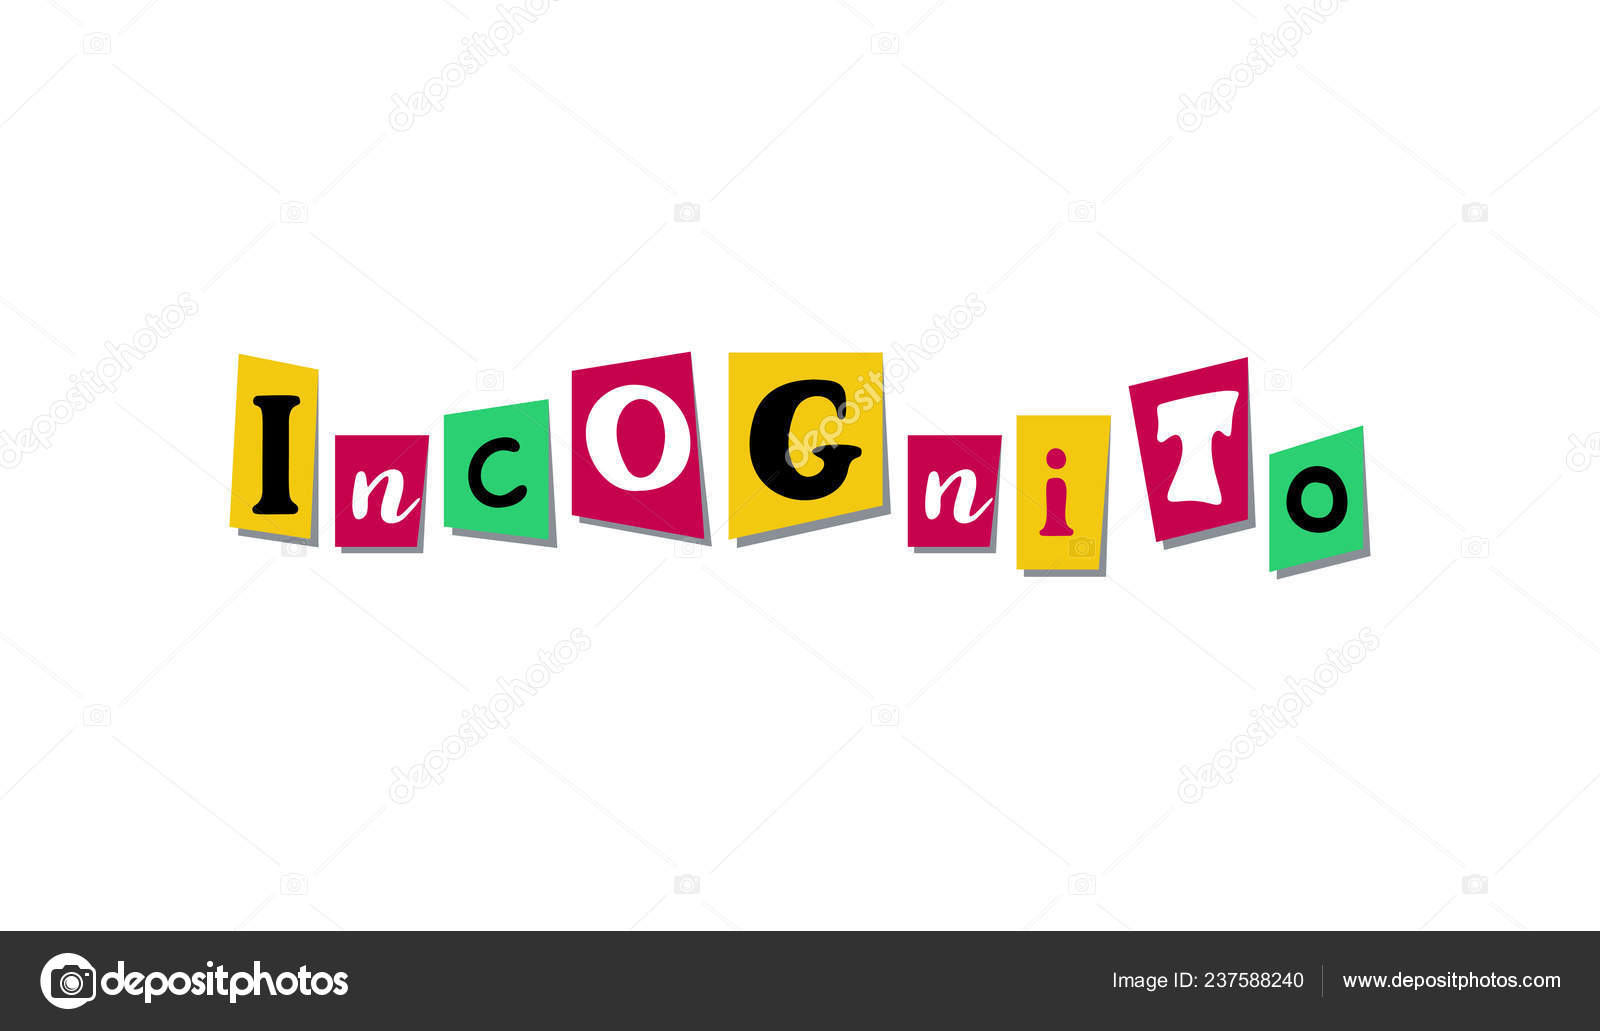 Colorful Newspaper Or Magazine Letters Incognito Hand Made Collage Of Vector Word For Scrapbooking Or Crafts Stock Vector C Peliken 237588240